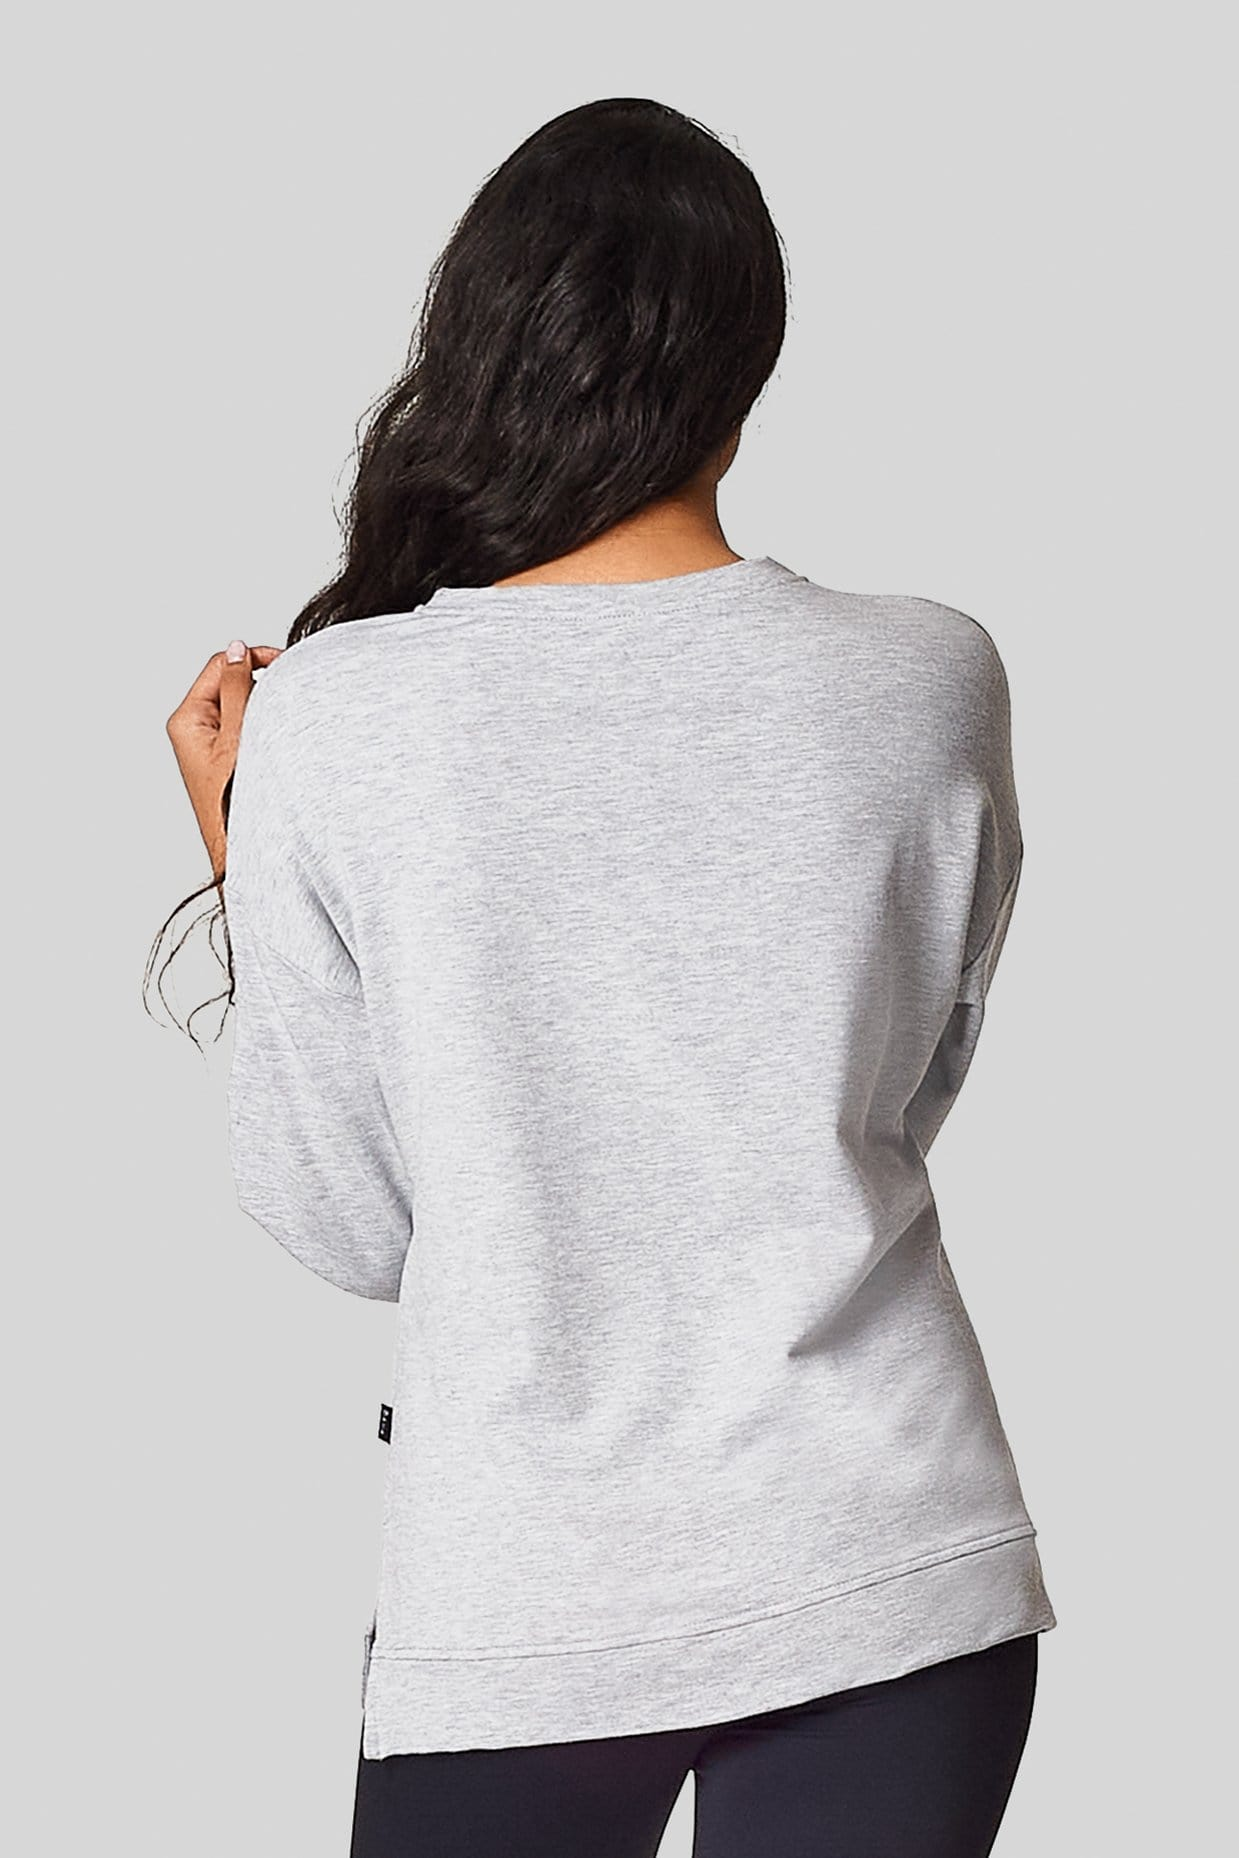 The back view of a brunette wearing a light heather gray sweatshirt with side slit.